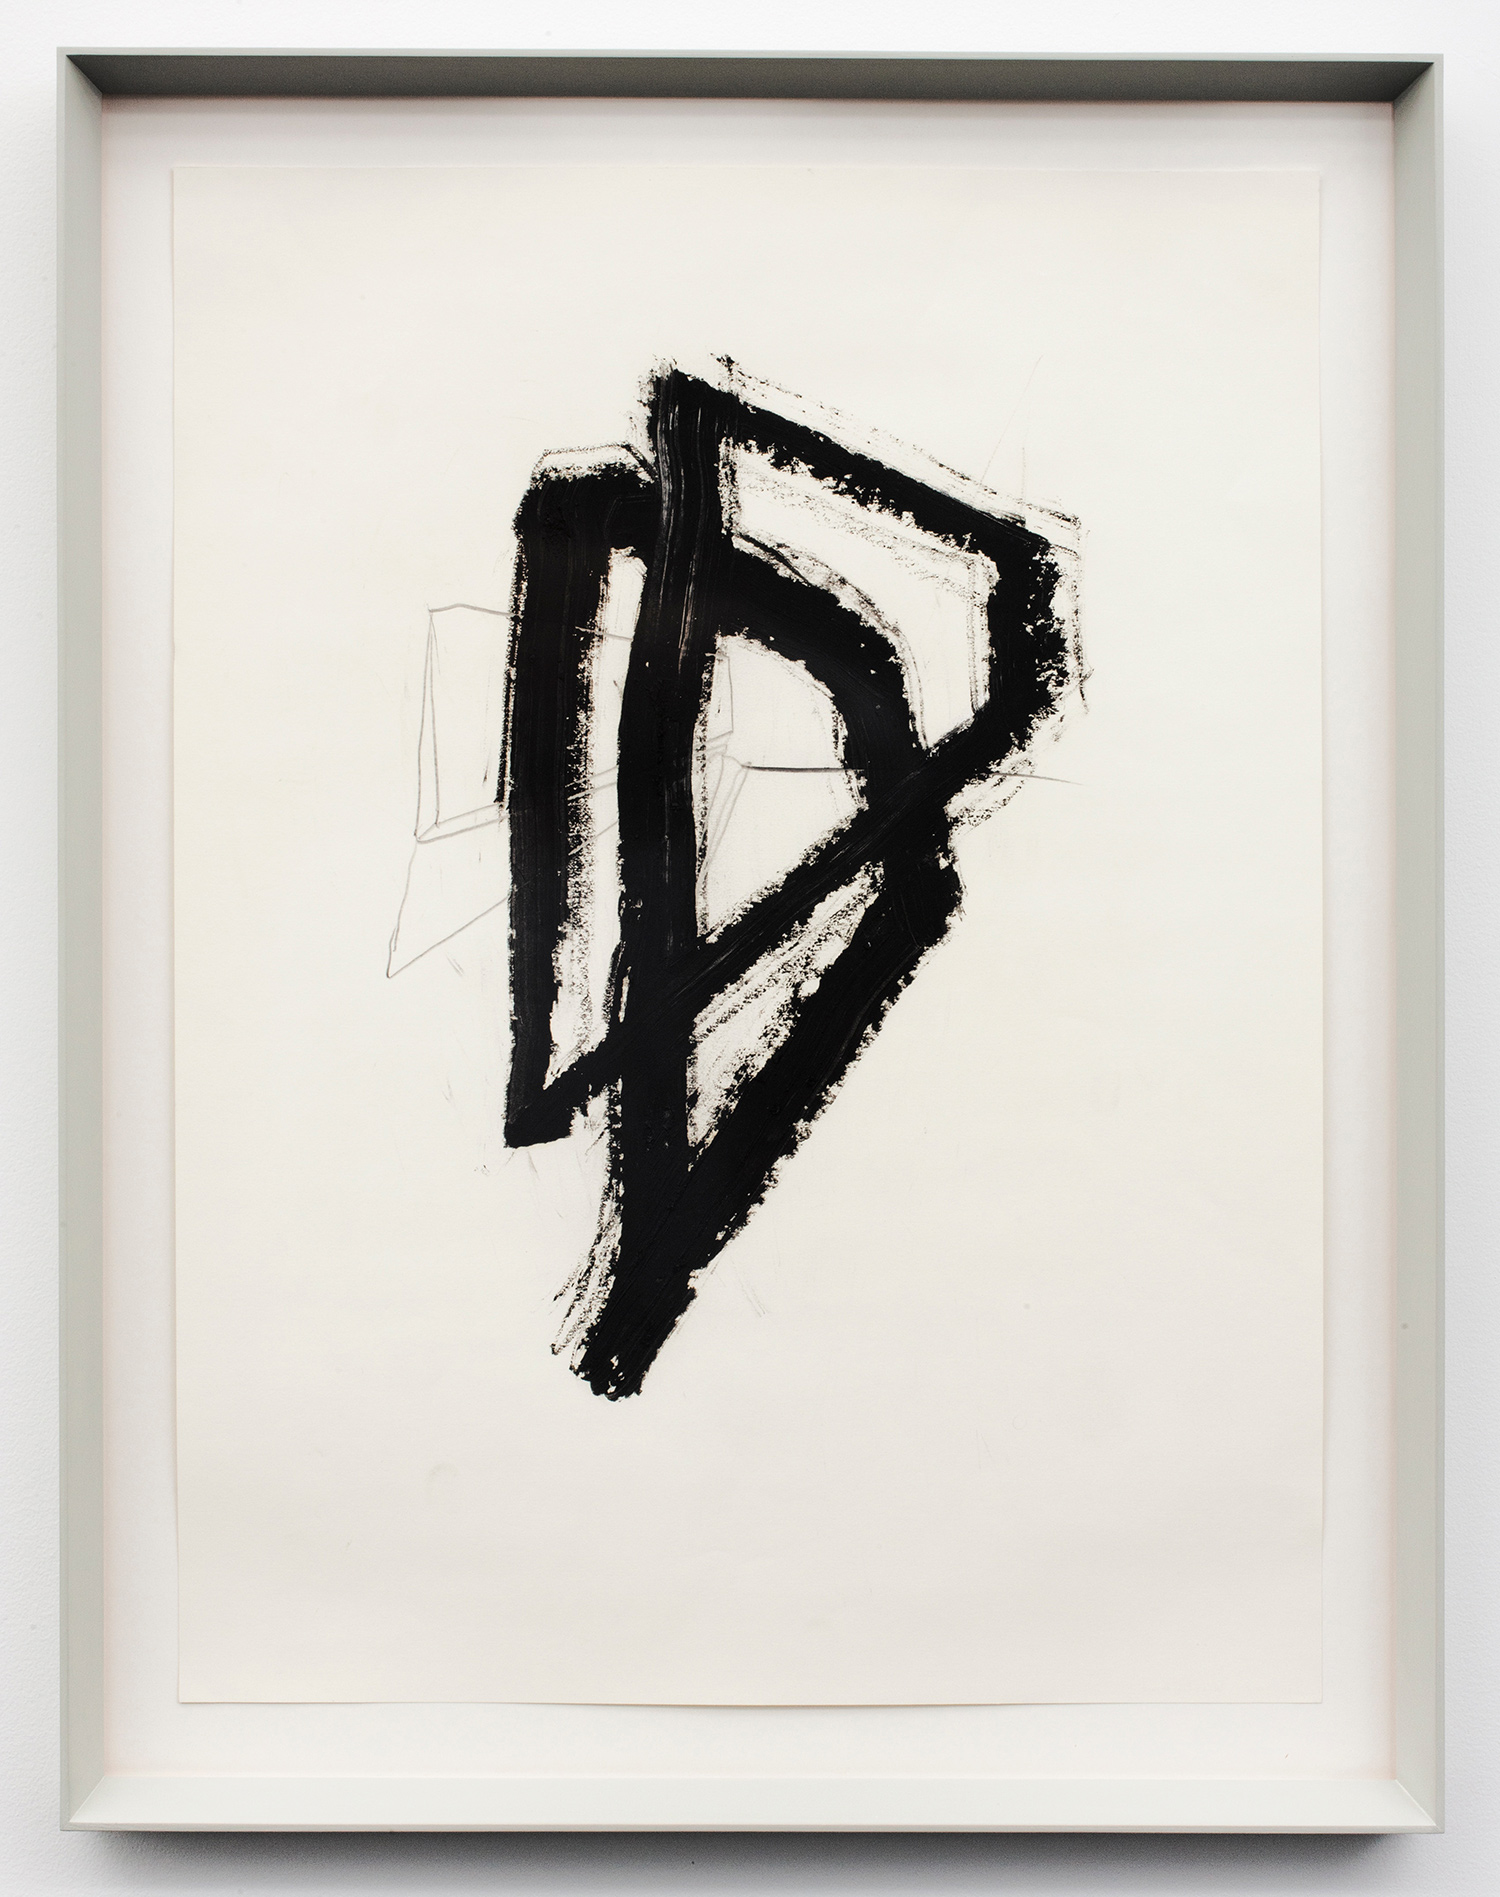 """Infinity BLockER_1 . Graphite and oil stick on paper. 27.5"""" x 21.25"""". 2012."""